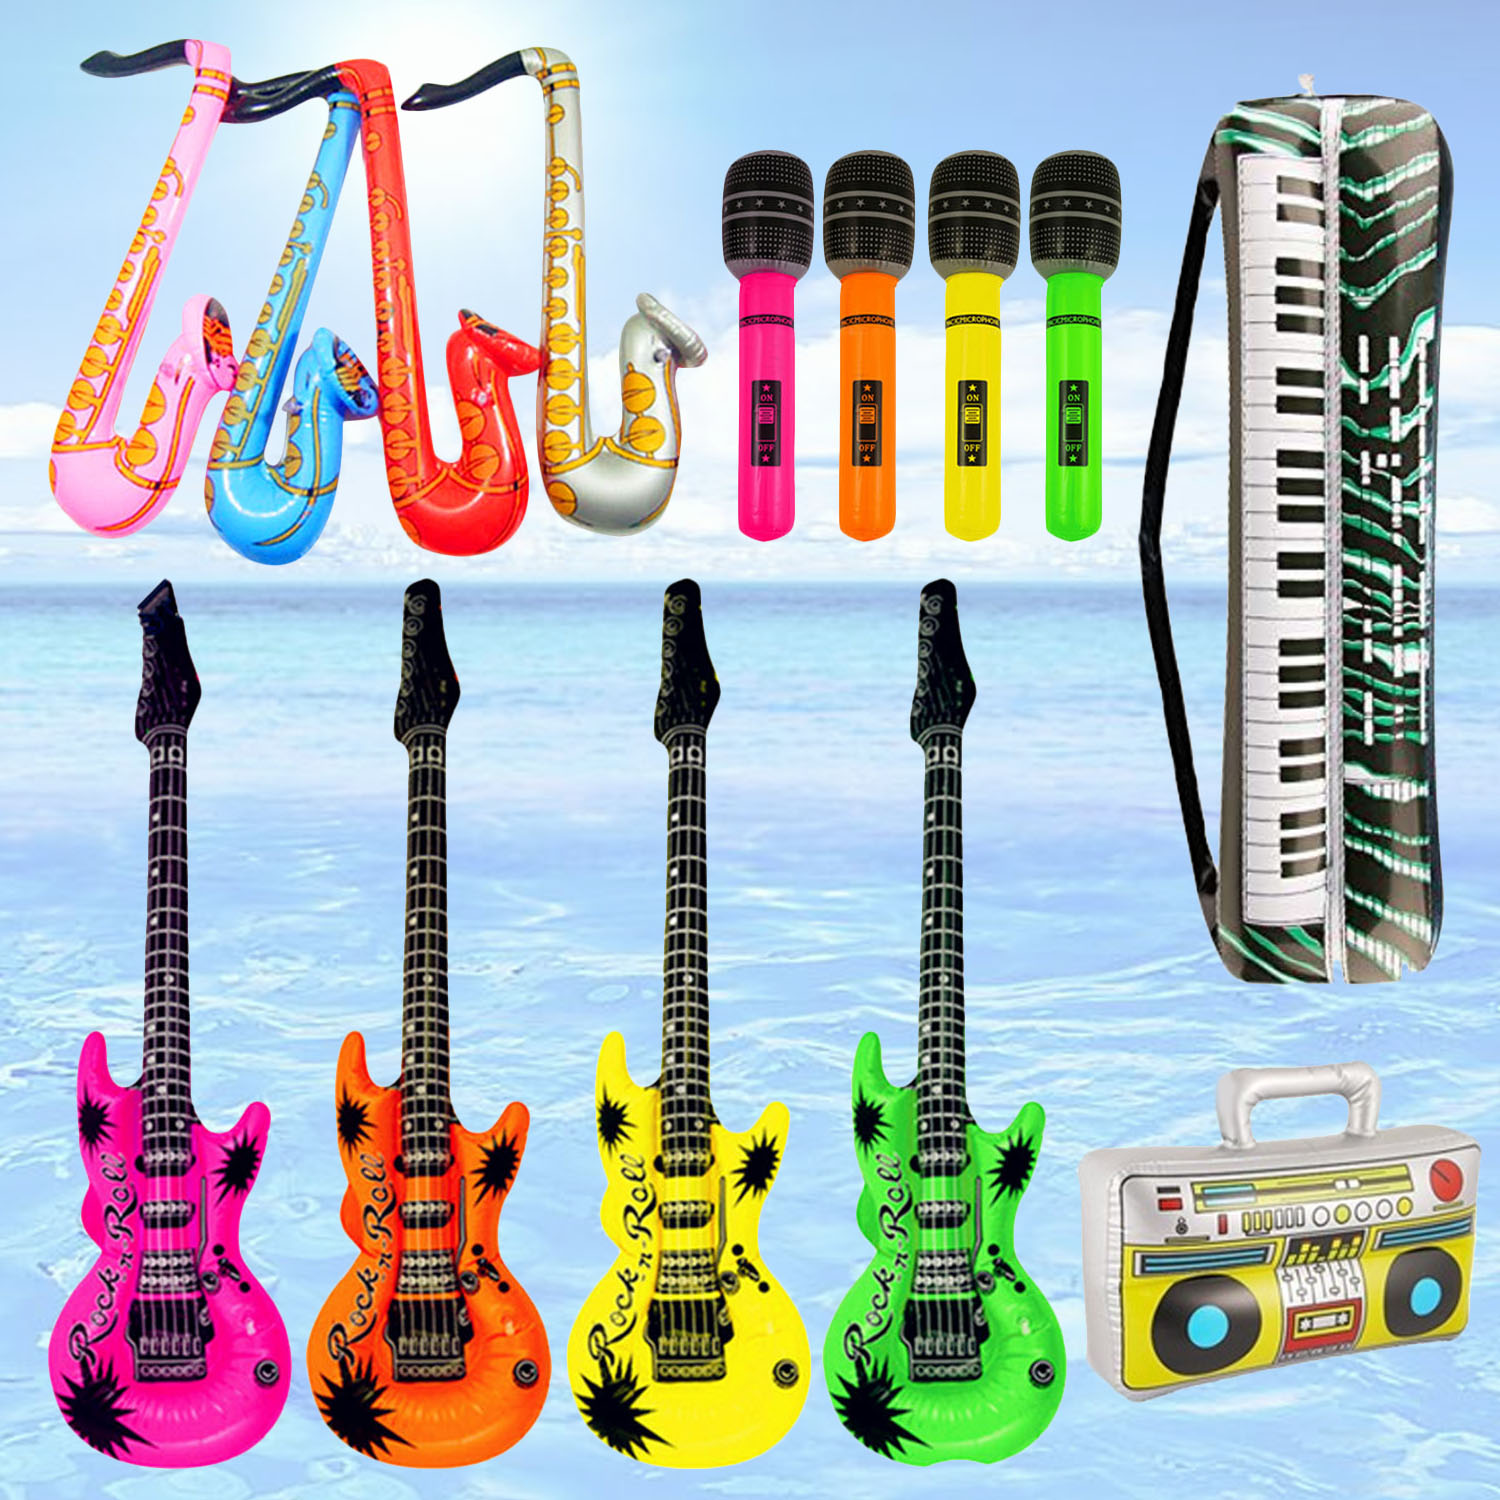 14cps Colorful Musical Inflatable Guitar Saxophone Microphone Piano Keyboard Radio Recorder Air Balloons Concert Party Decor Toy